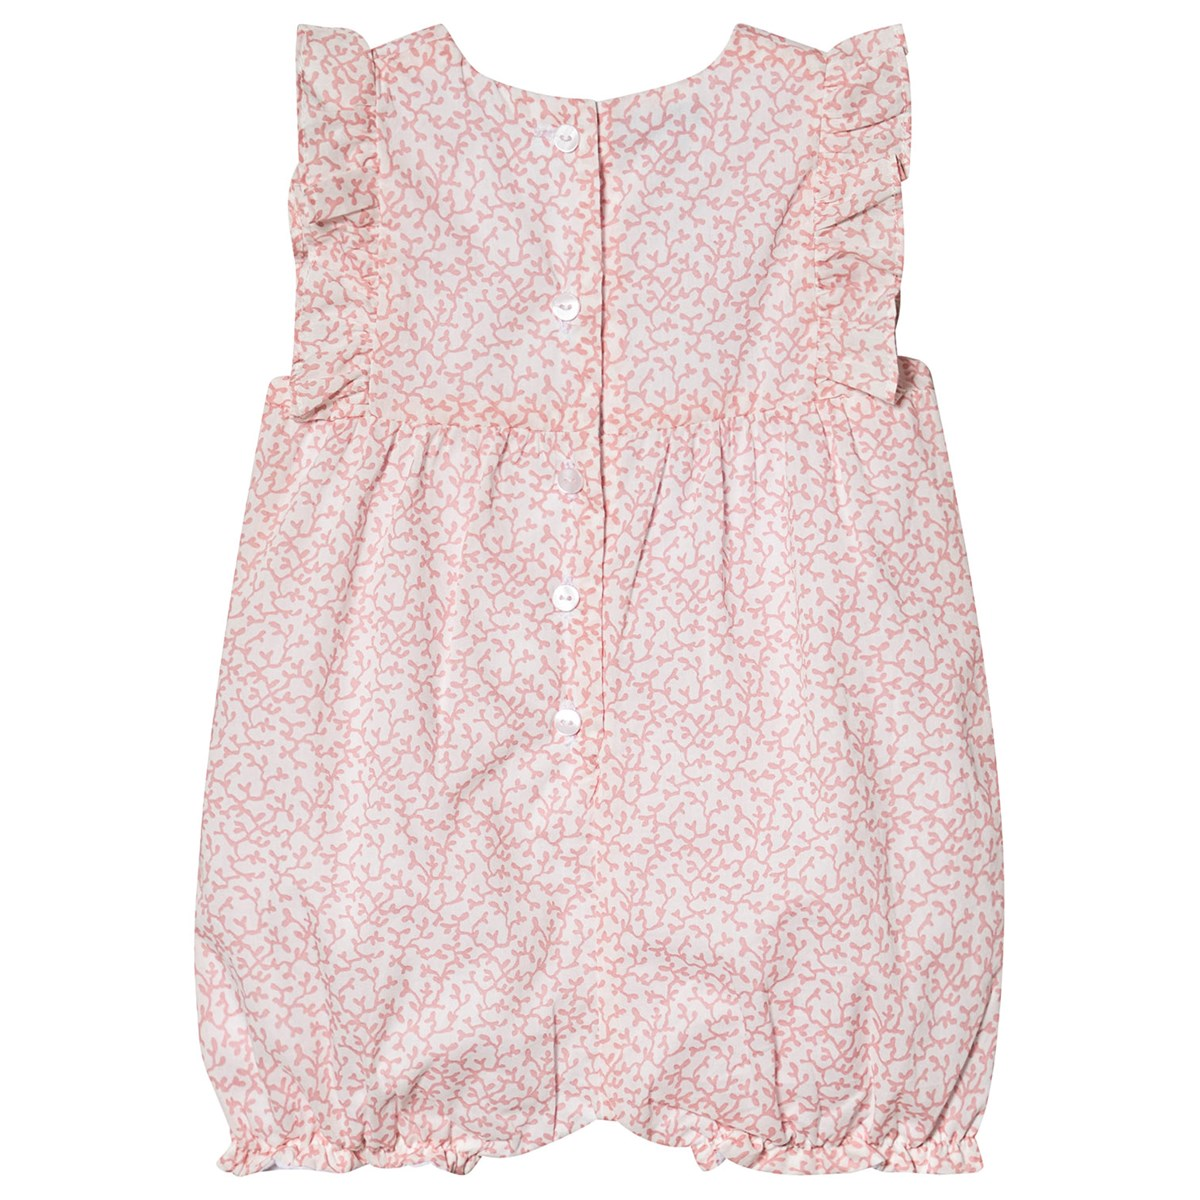 32d3c27ec Absorba - Pink and White Floral Liberty Print Frill Sleeve Bubble -  Babyshop.com